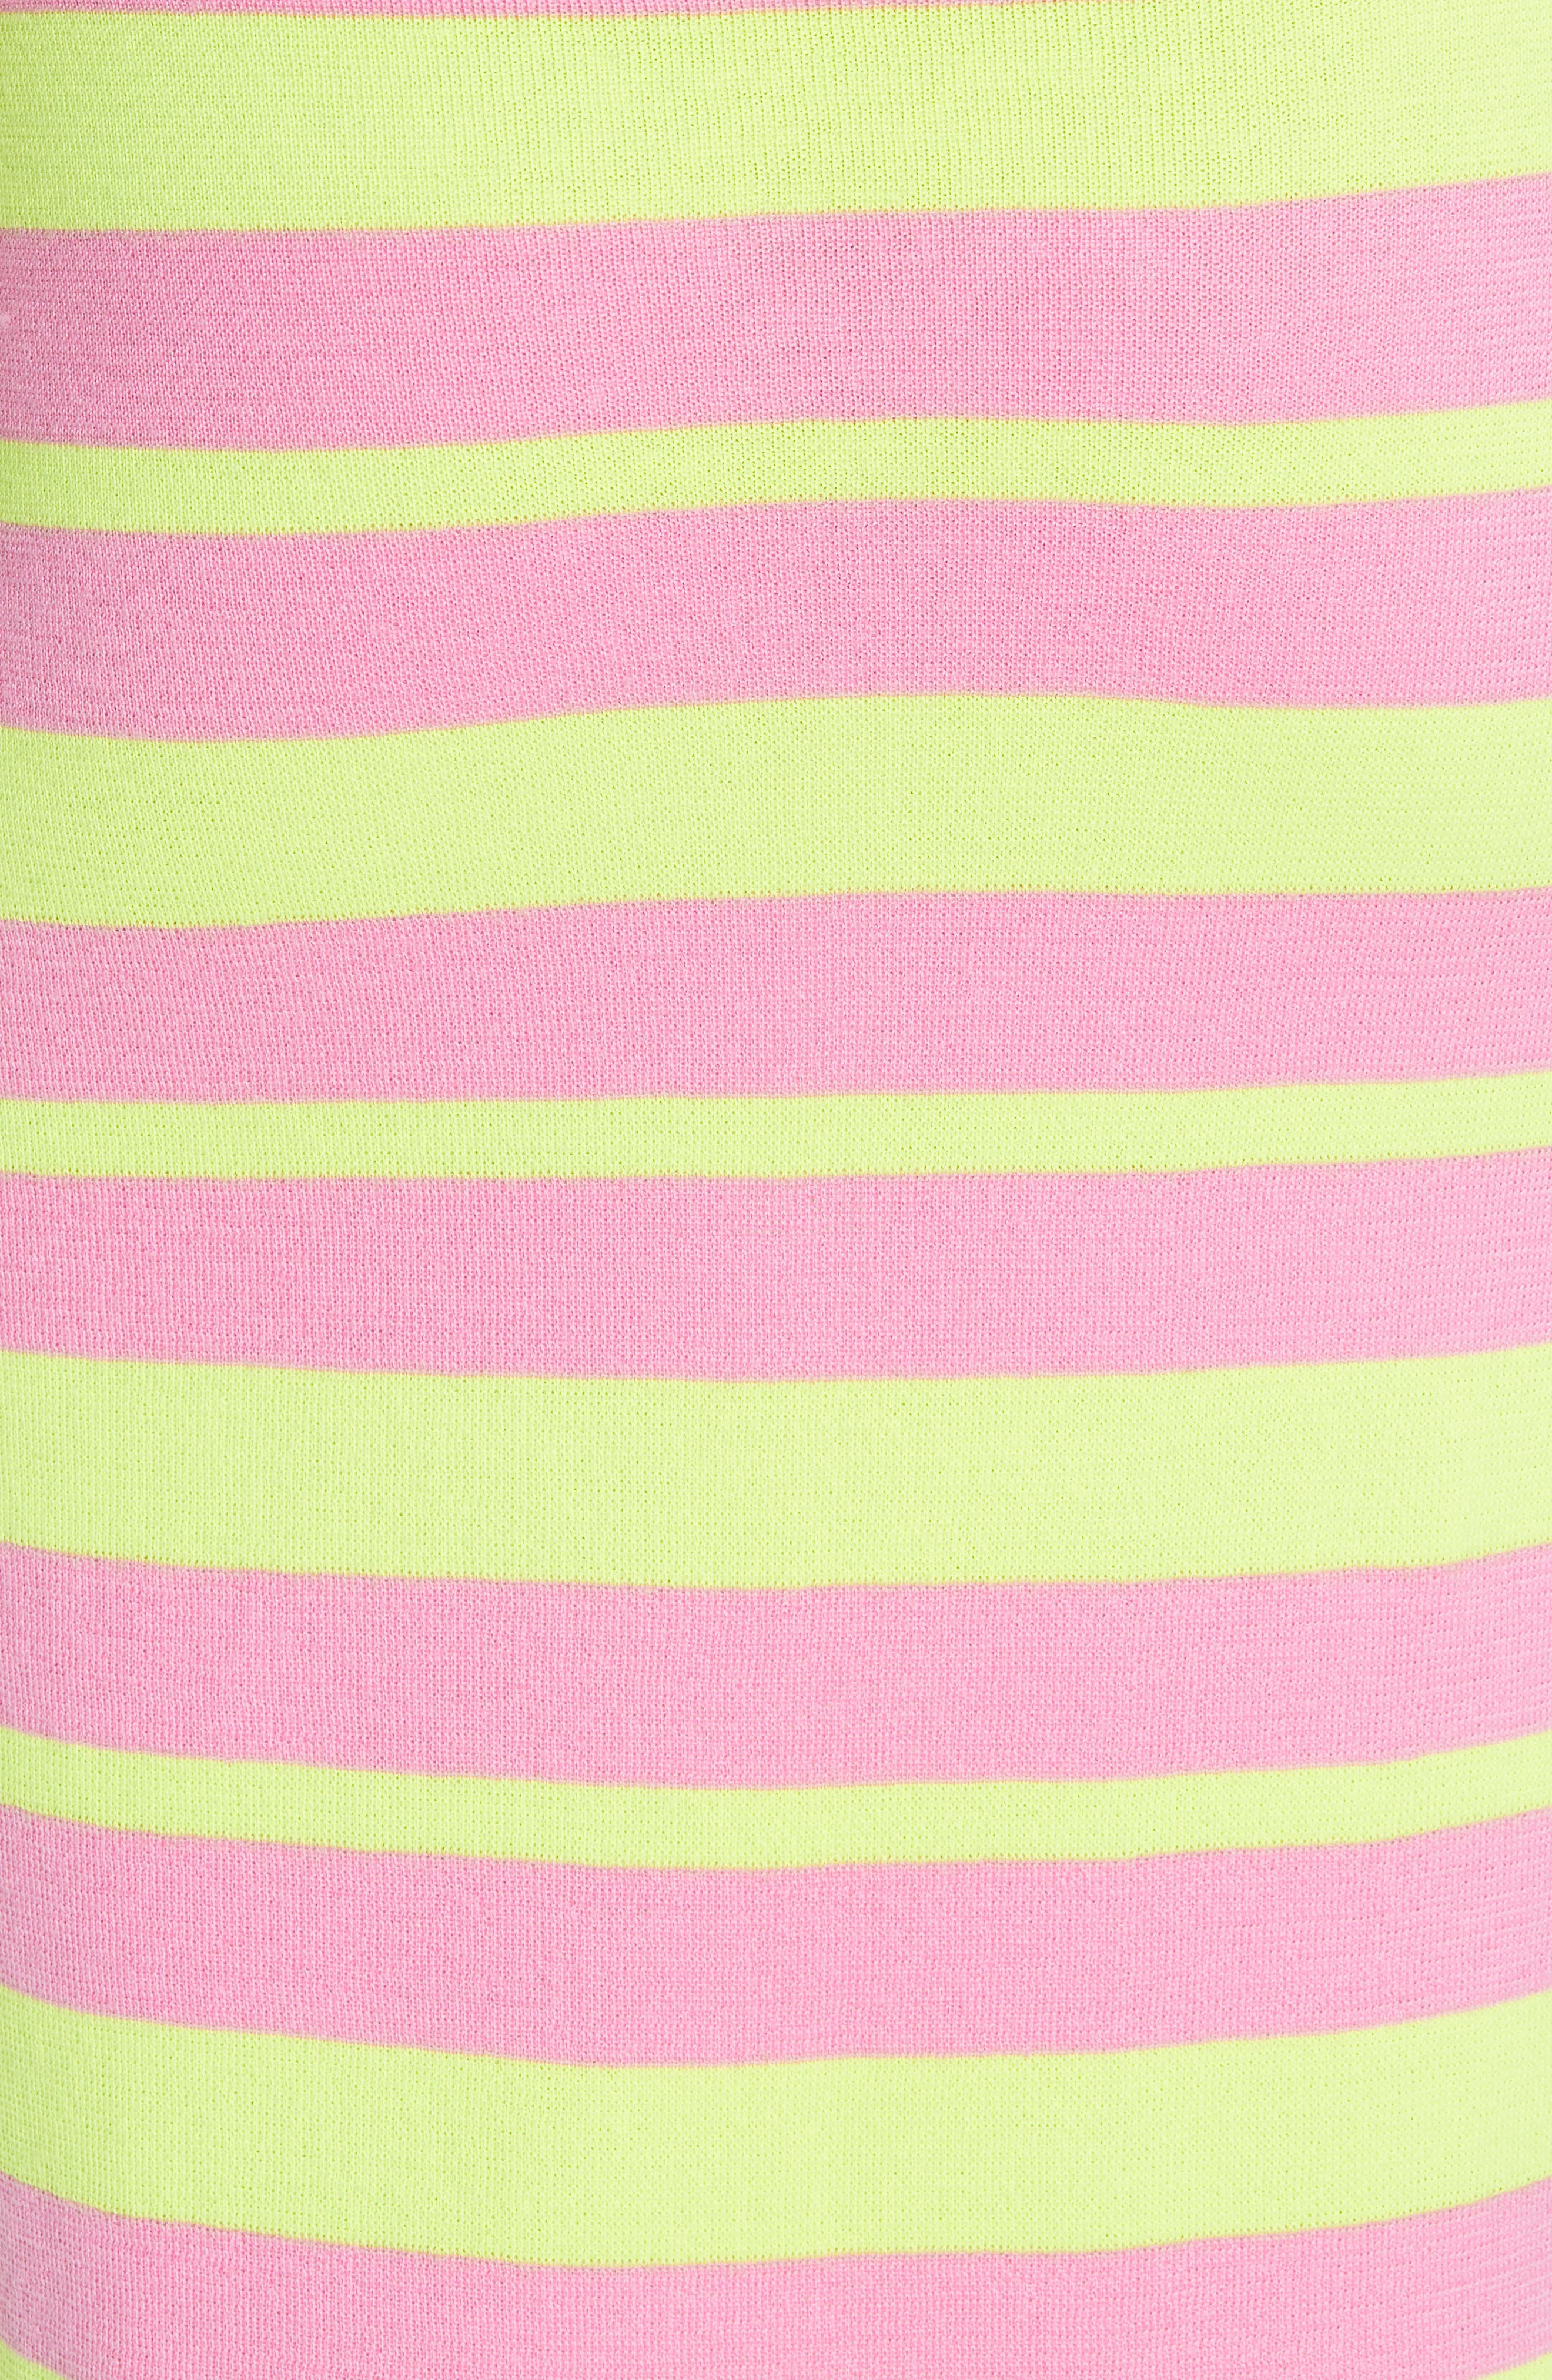 Stripe Knit Maxi Skirt,                             Alternate thumbnail 5, color,                             LIME AND PINK COMBO